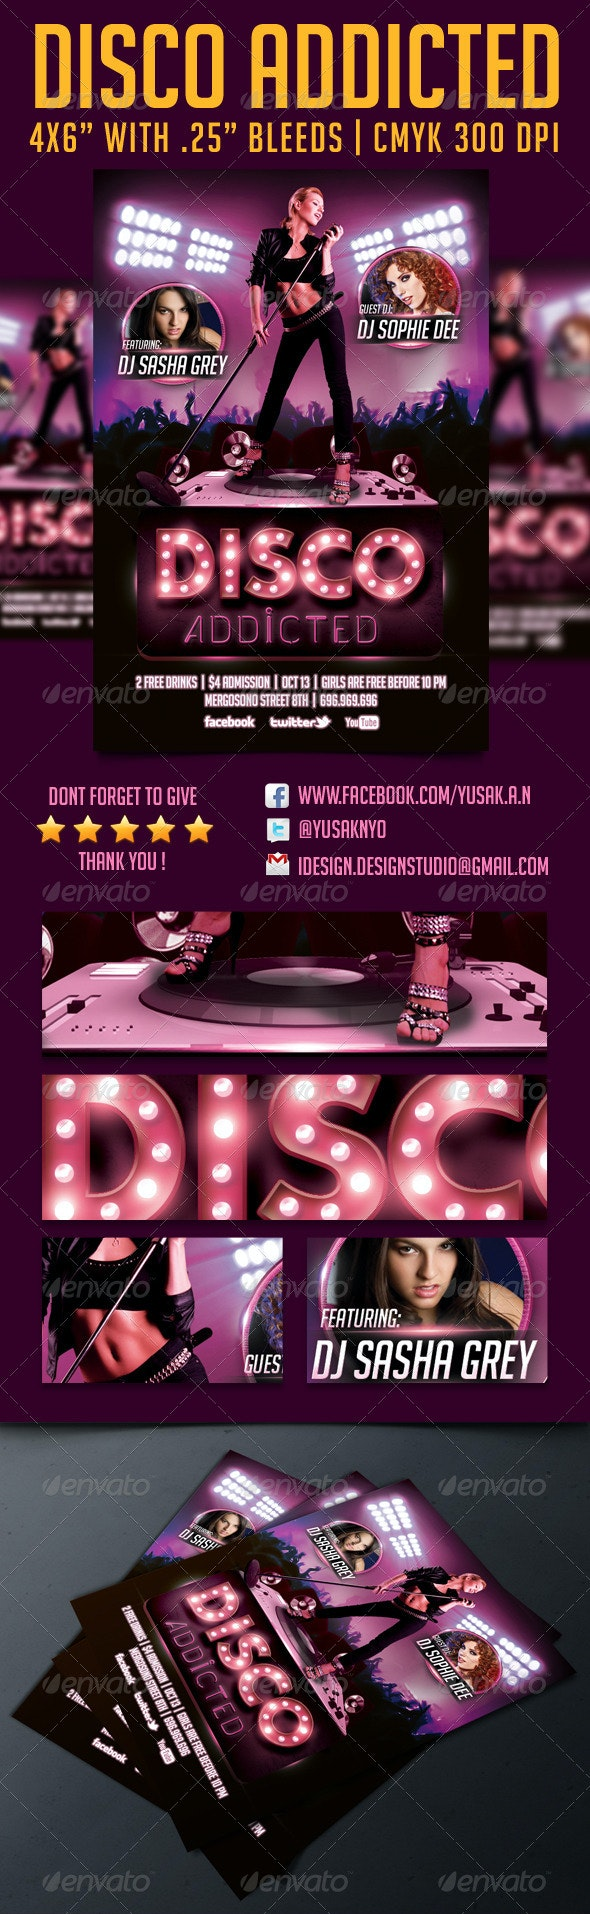 Disco Addicted Flyer Template - Clubs & Parties Events